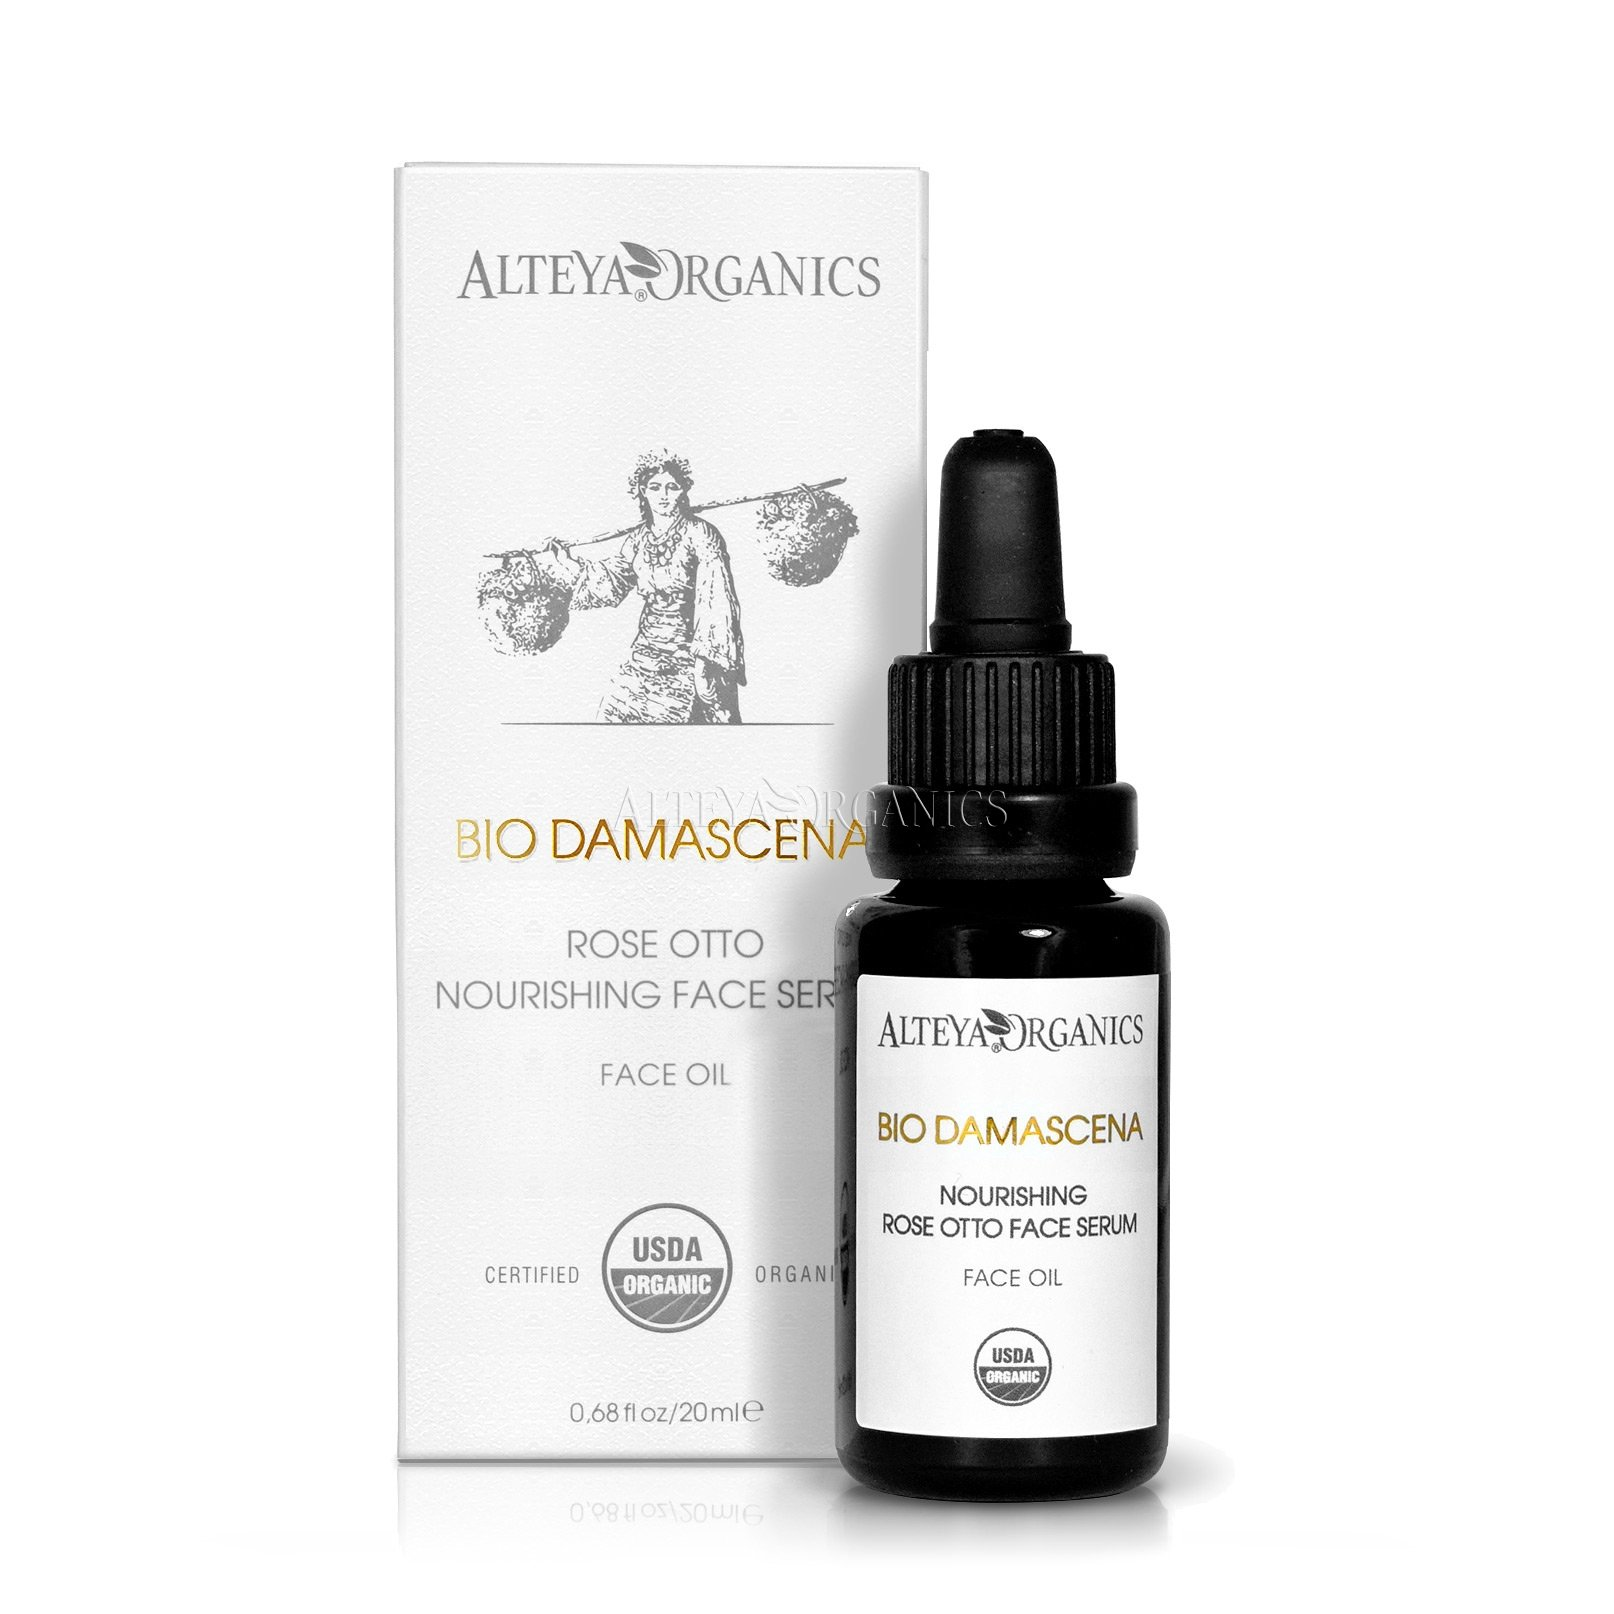 Alteya Organics USDA Organic BioDamascena Face Serum